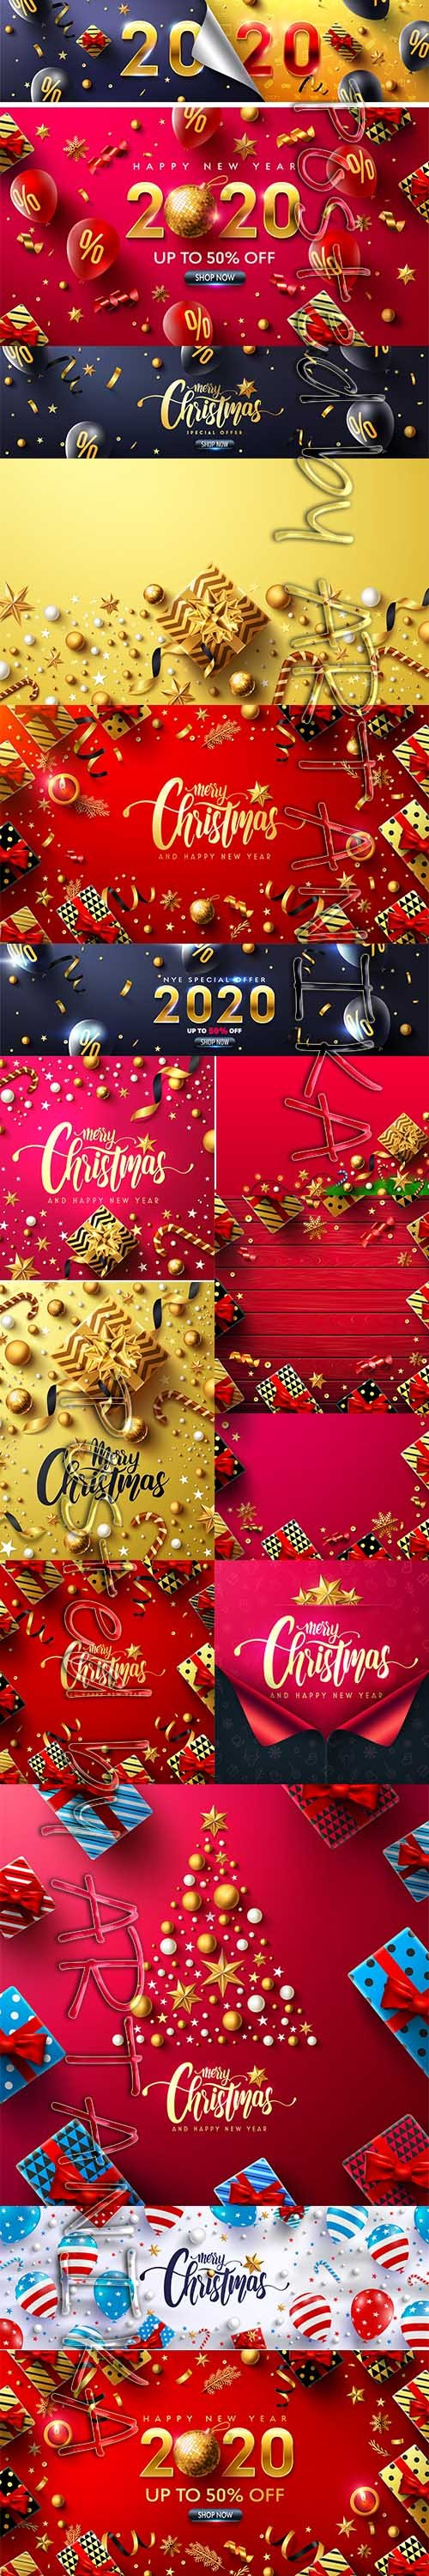 Merry Christmas and New Year 2020 Vector Illustrations Pack Vol 10